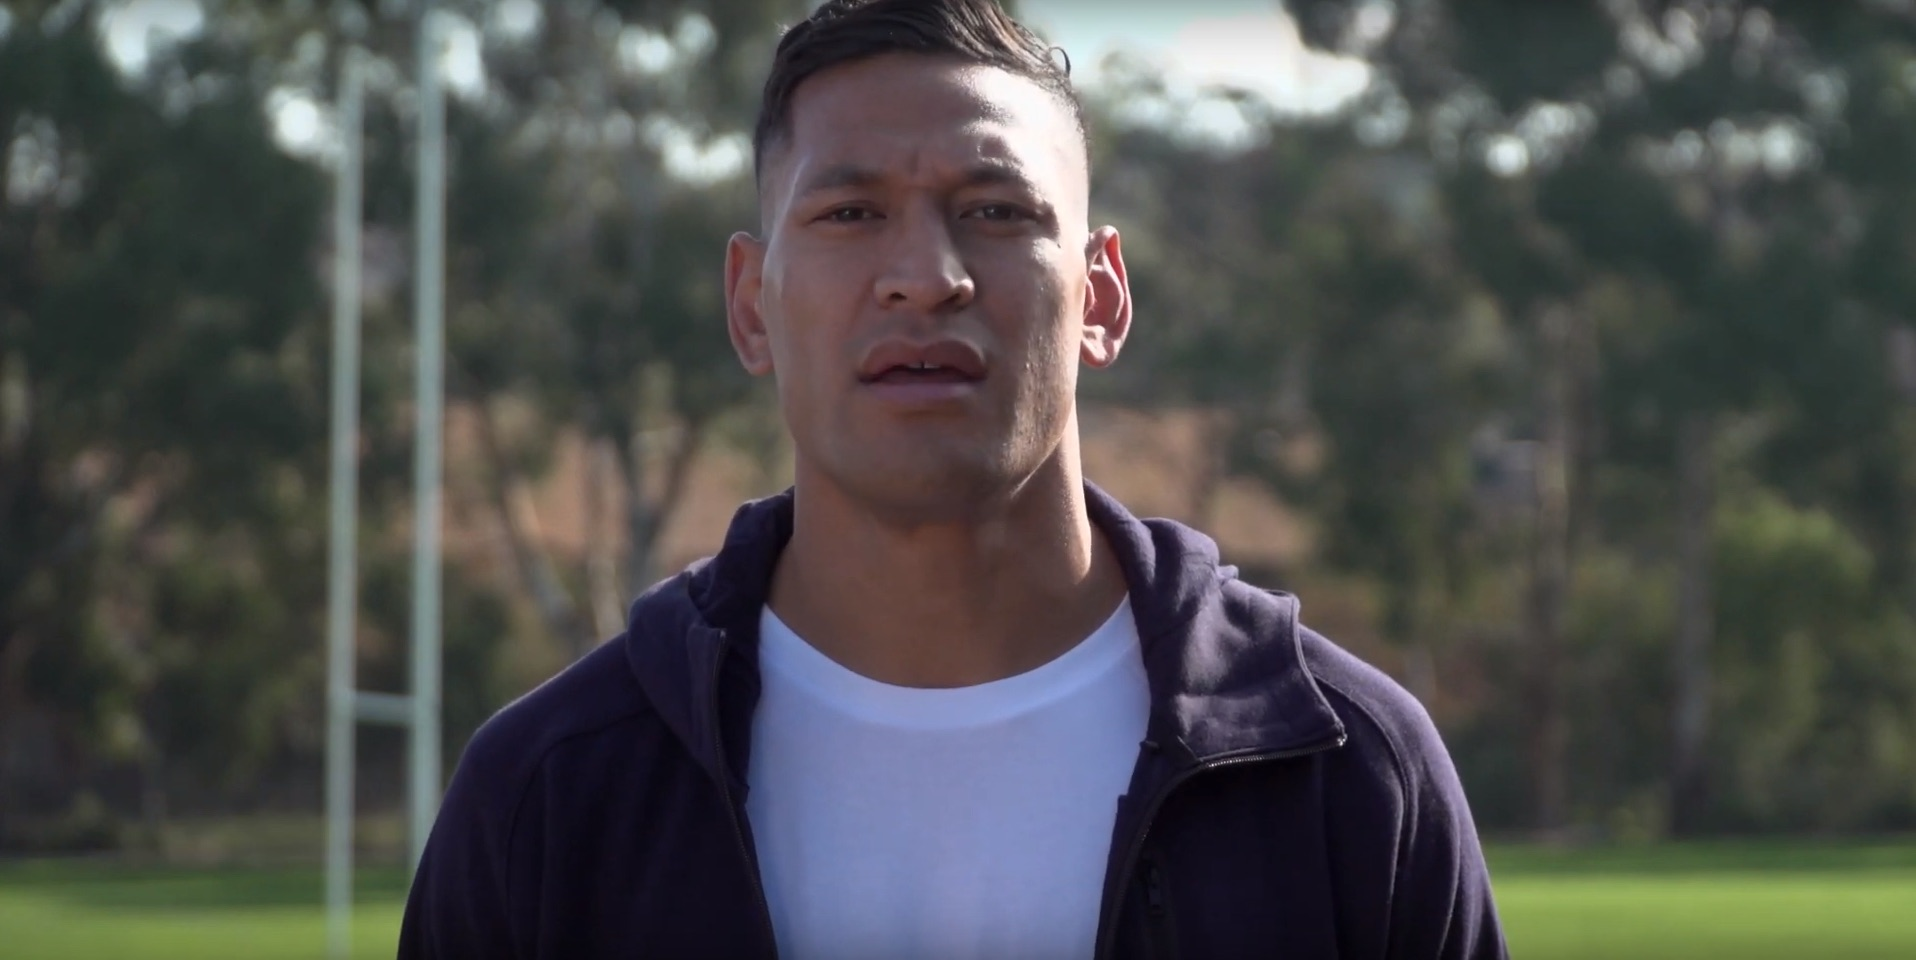 Israel Folau's crowdfunding page shut down, money to be refunded